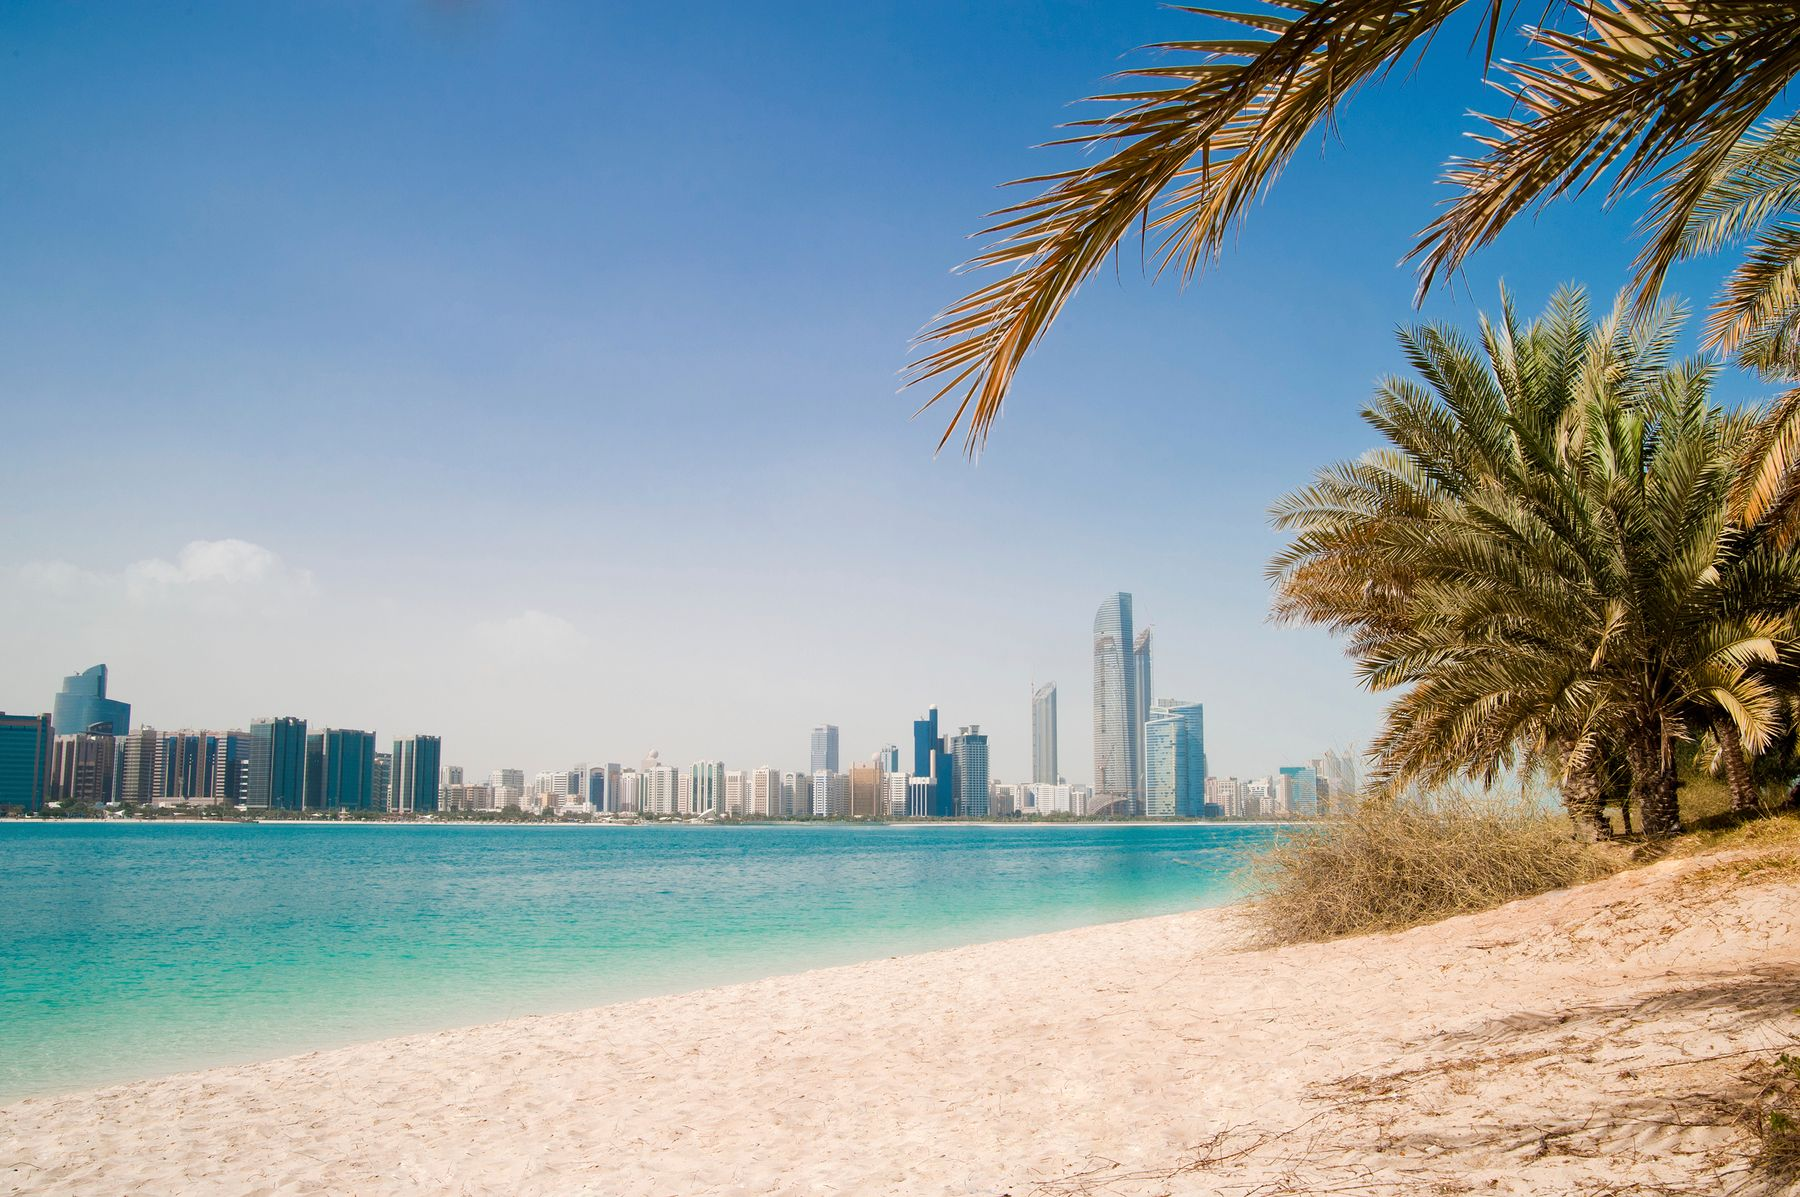 The skyline of dream destination Dubai sits in the background, while turquoise water and a white palm-fringed beach are in the foreground